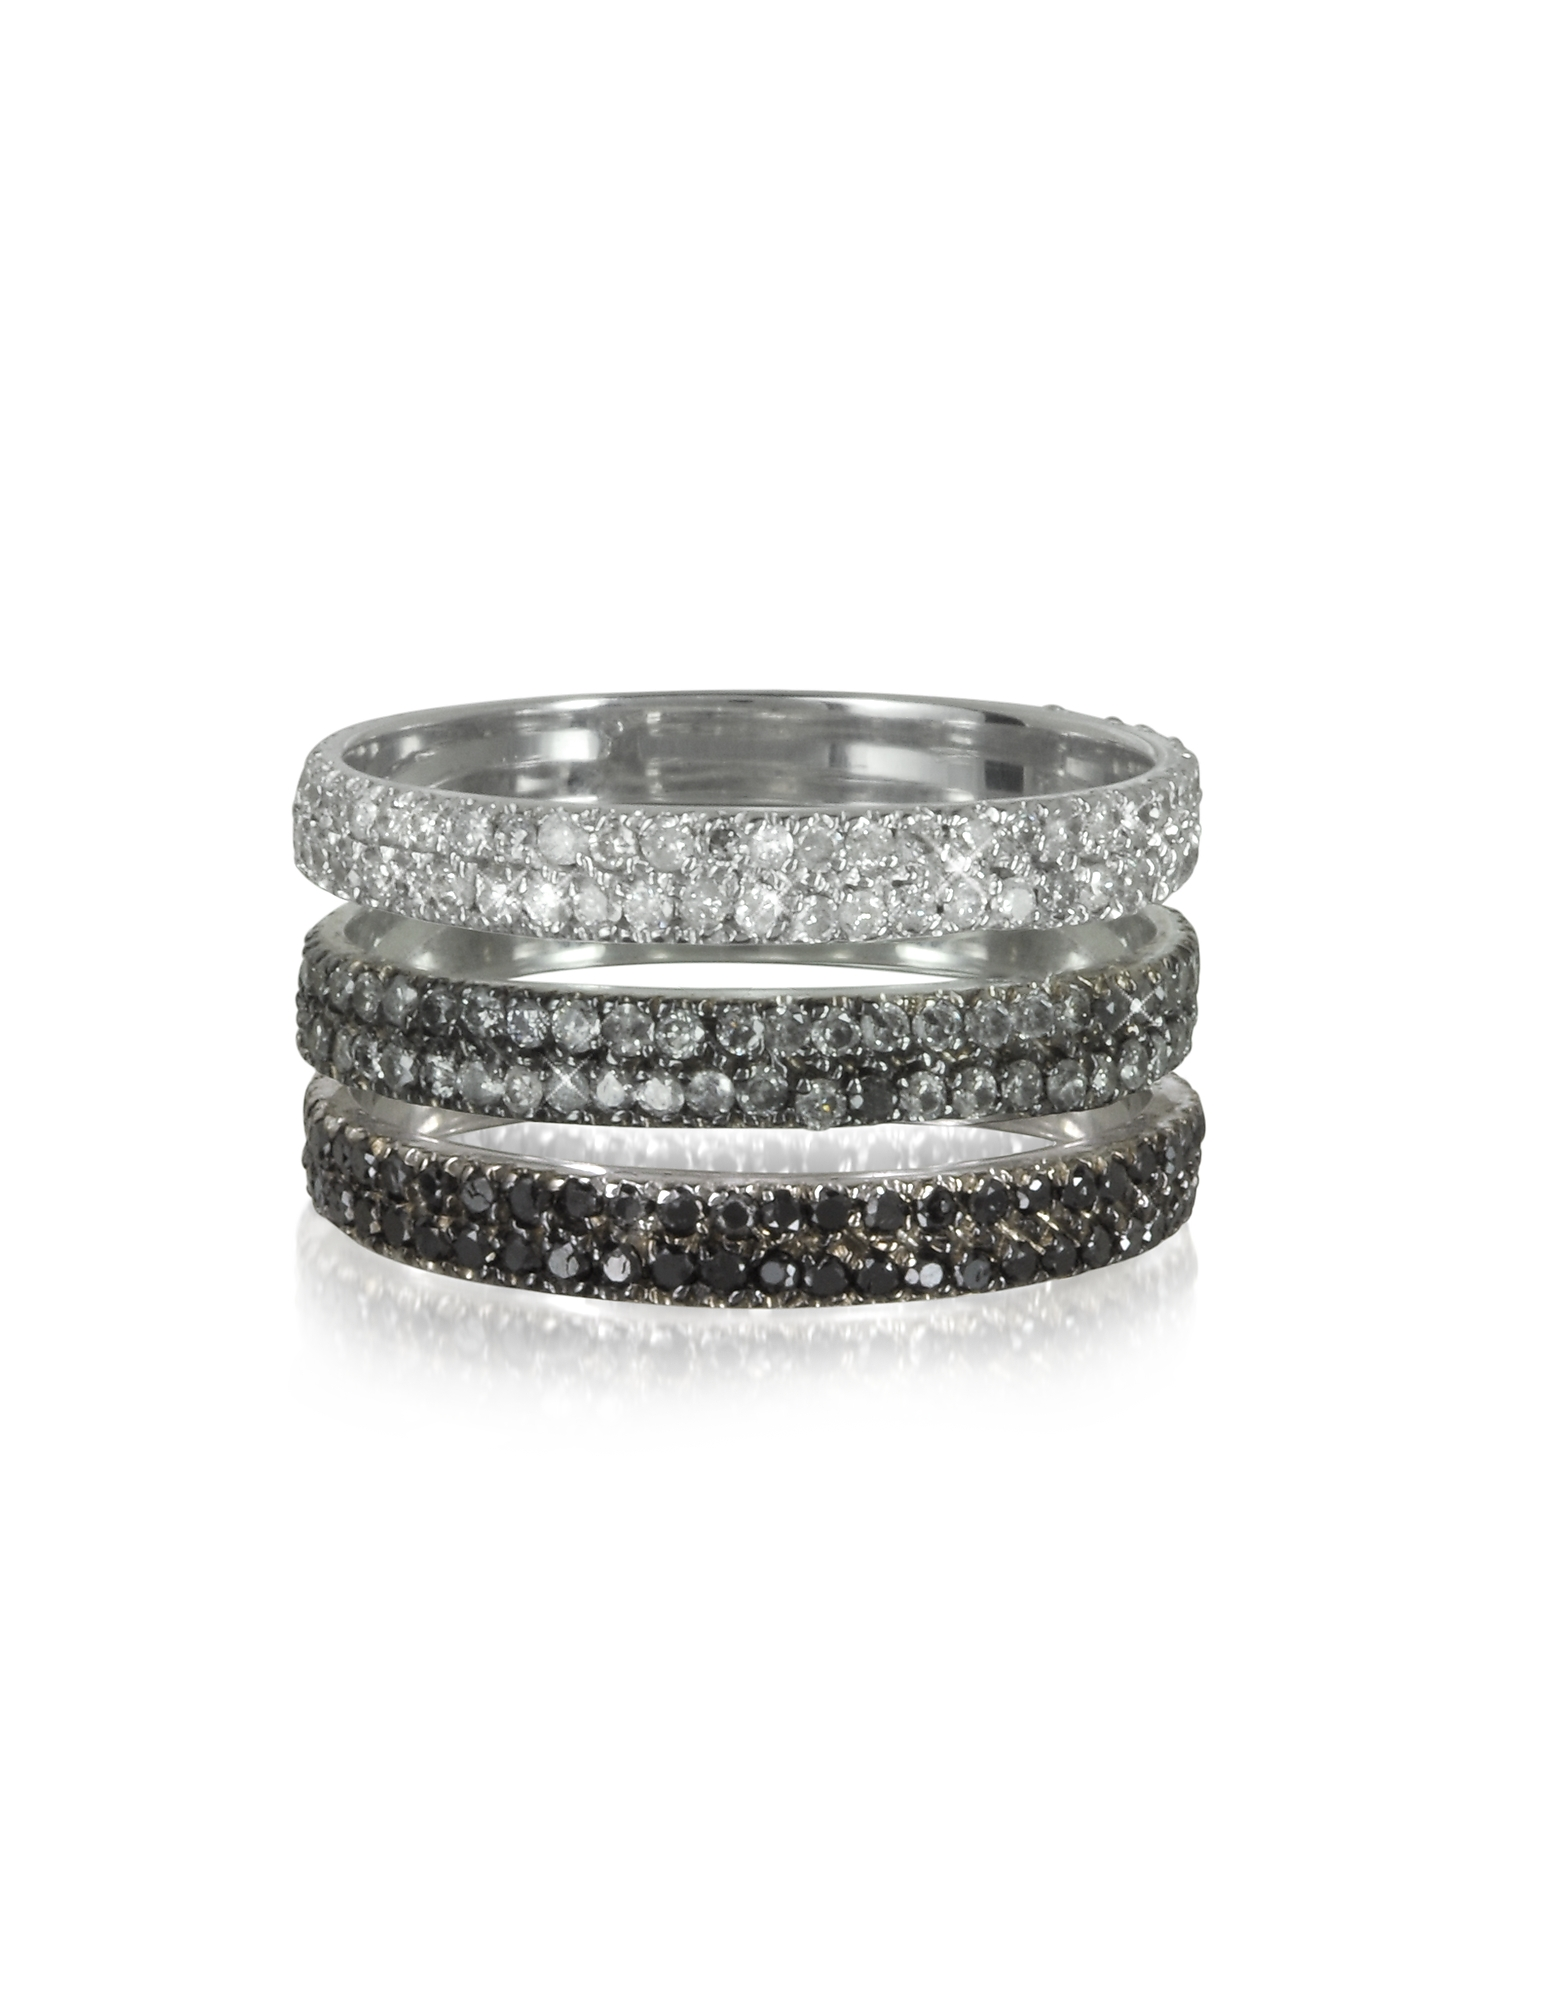 Bernard Delettrez Rings, Triple Band 18K White Gold Ring w/White, Grey and Black Diamonds